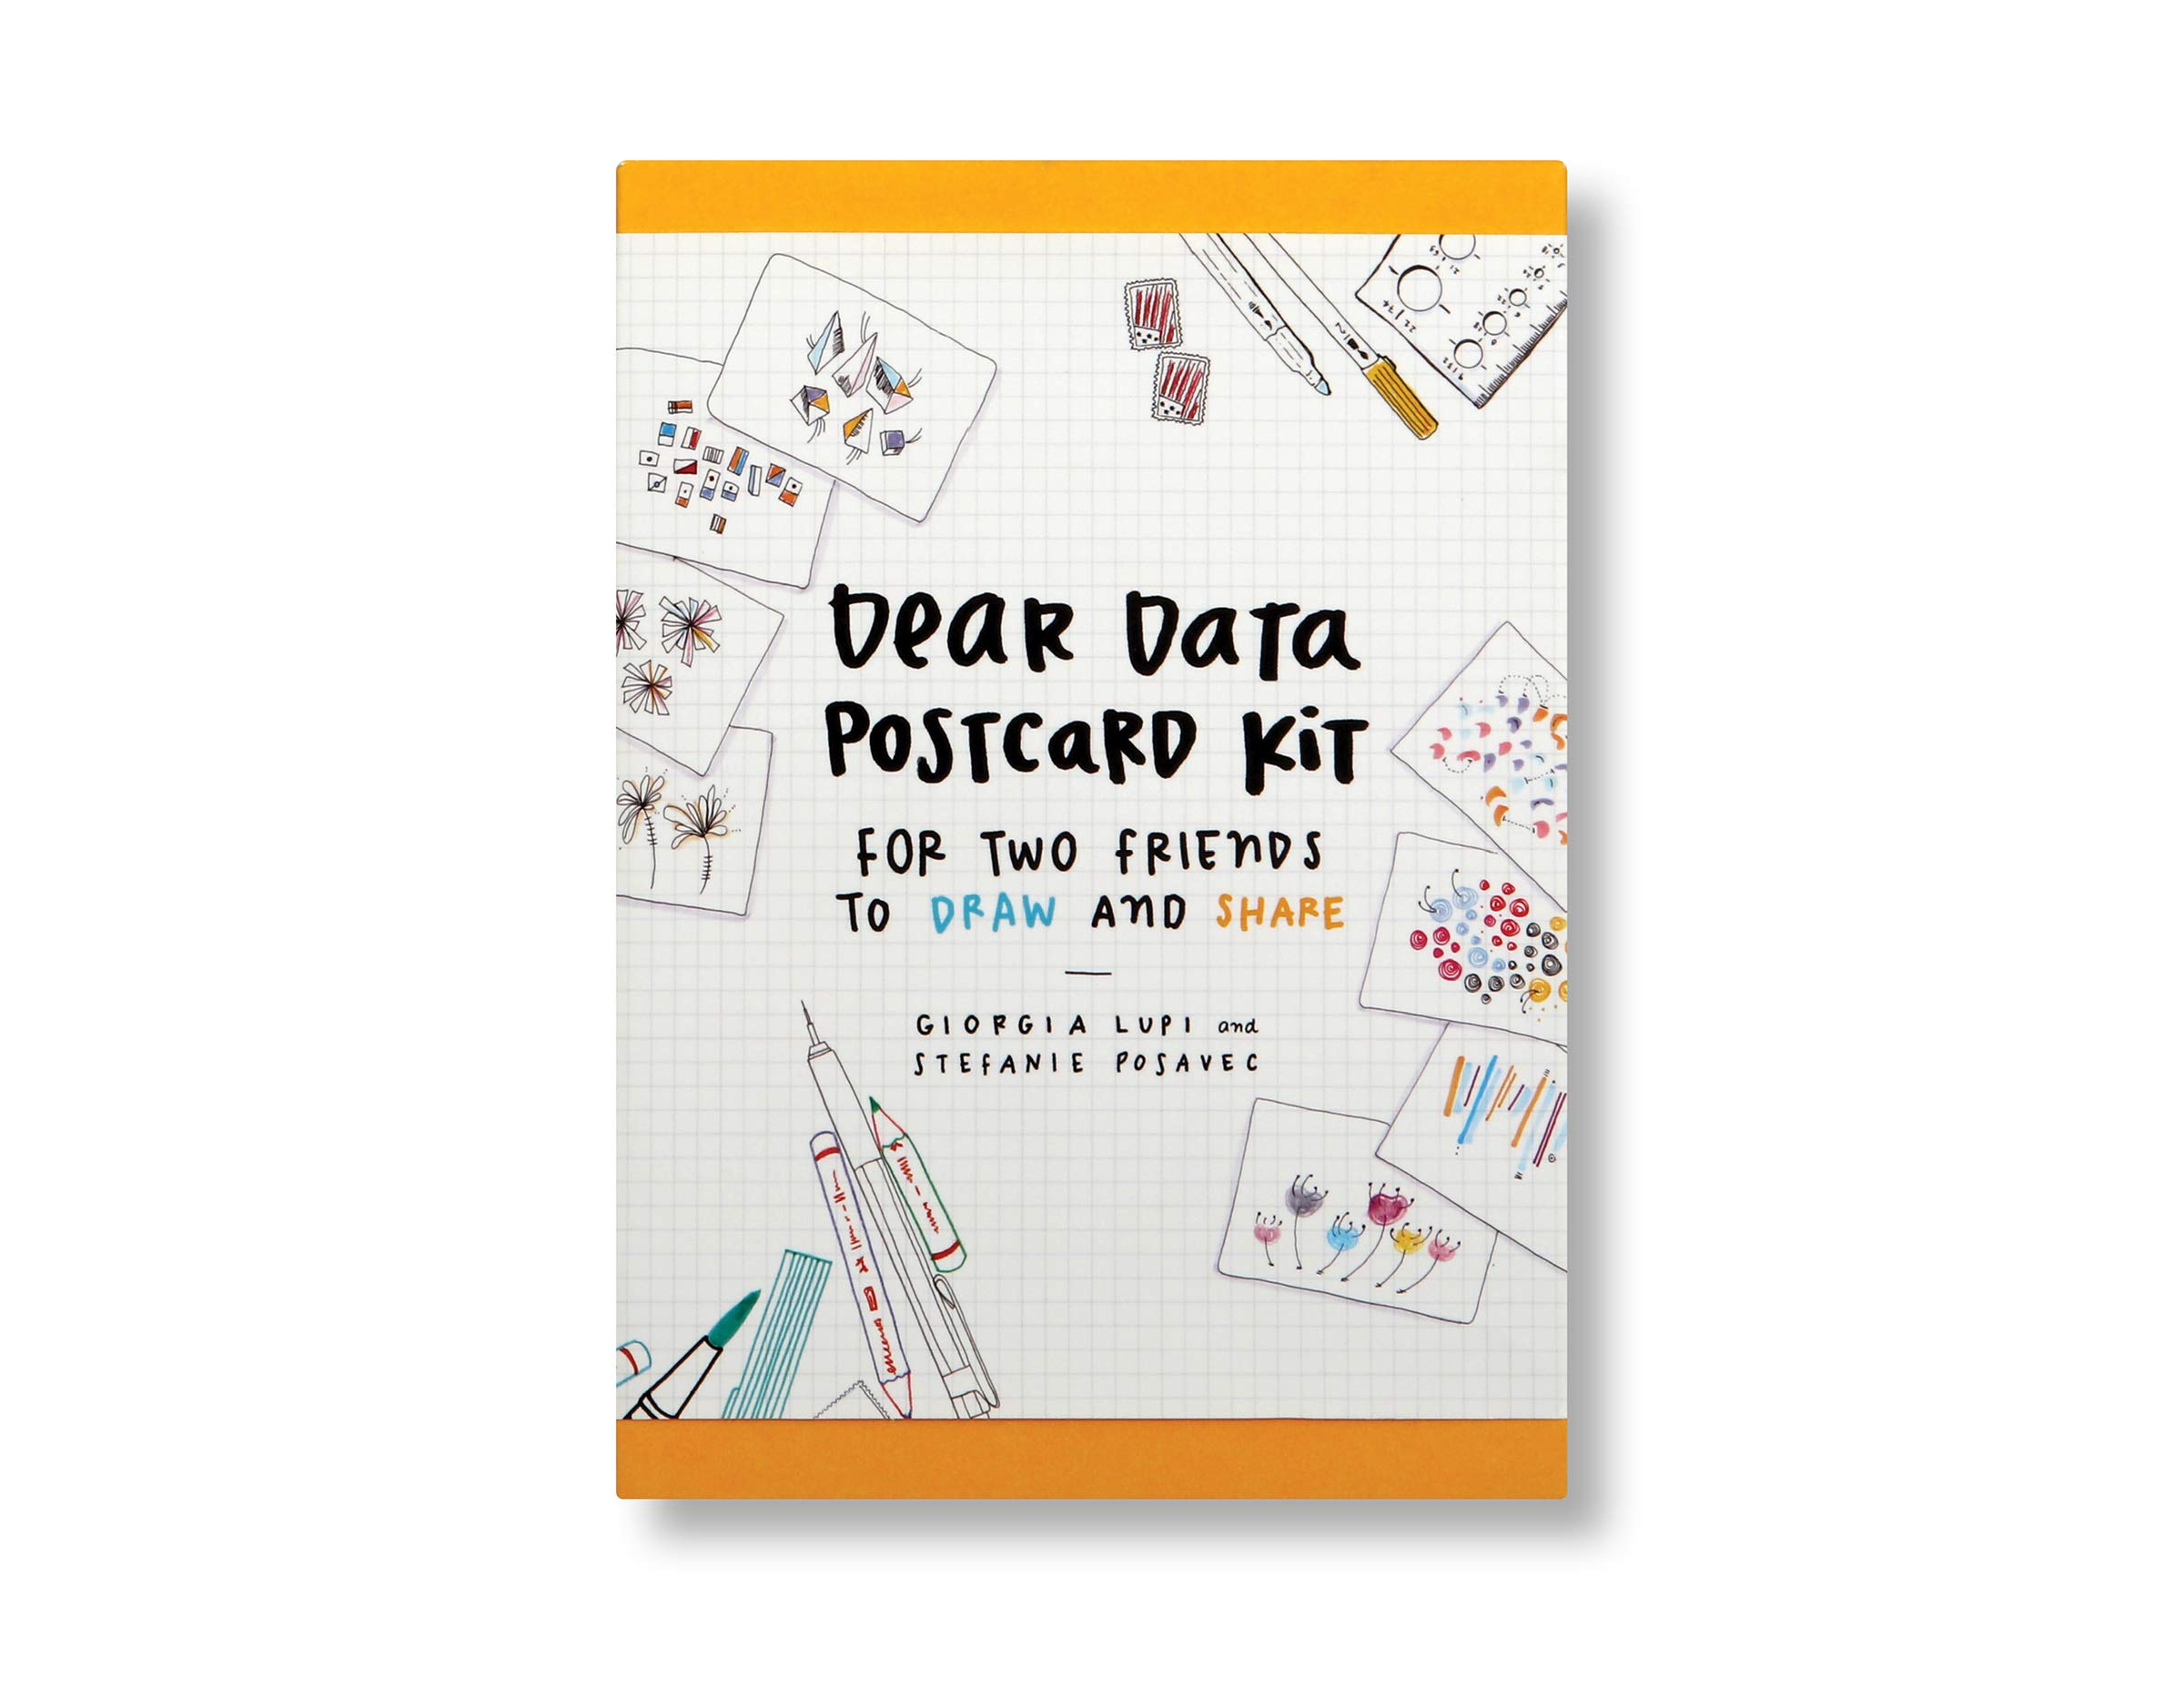 Dear Data Postcard Kit: For Two Friends To Draw And Share